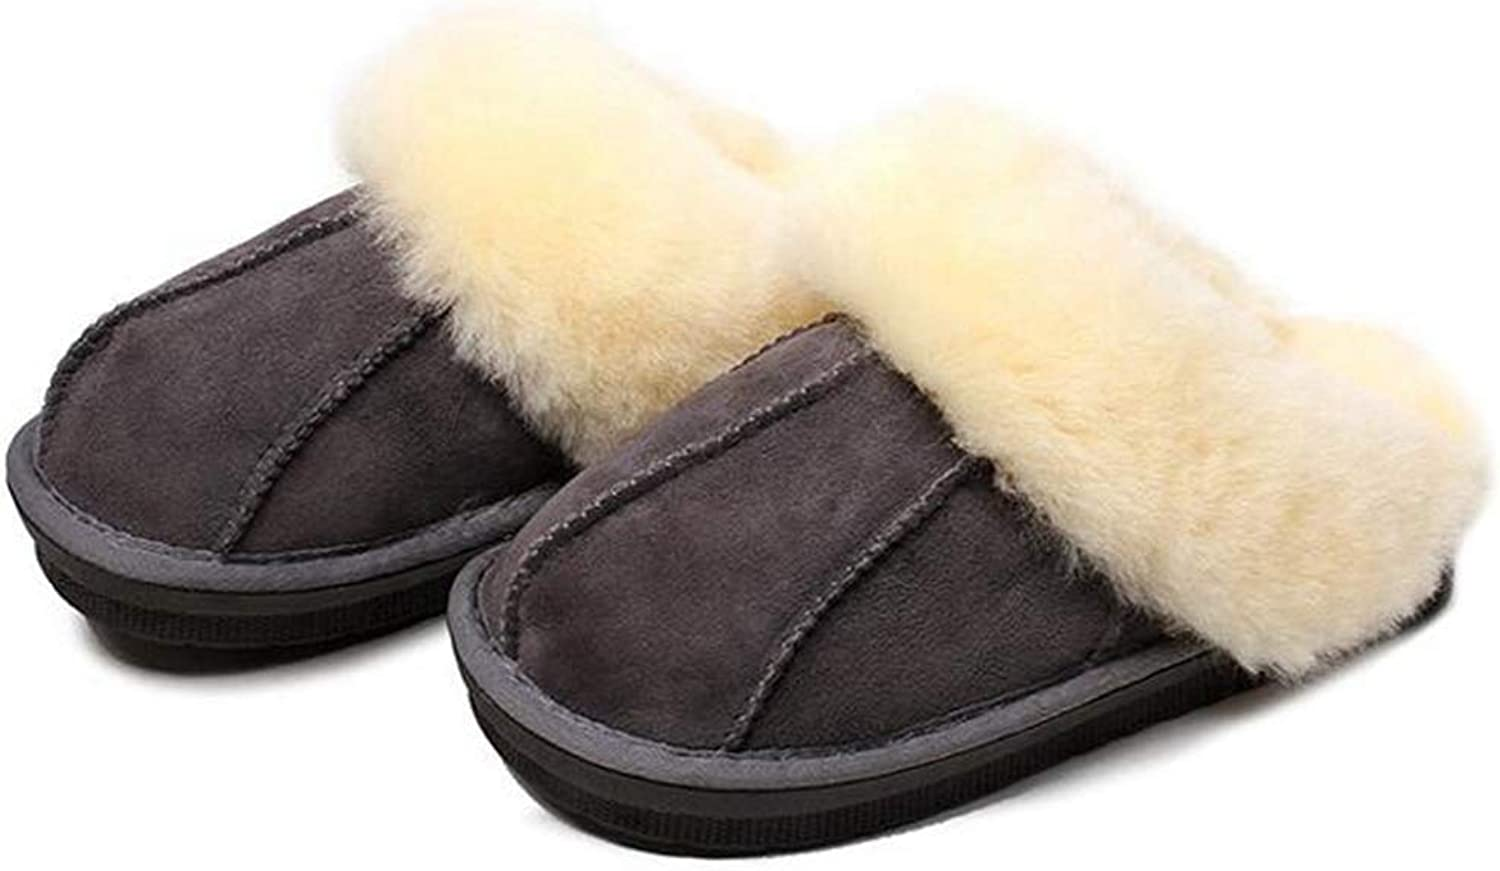 Nafanio Home Couple Slippers Genuine Leather Sheepskin Boots Wool House Indoor Loafer Long Plush Winter shoes